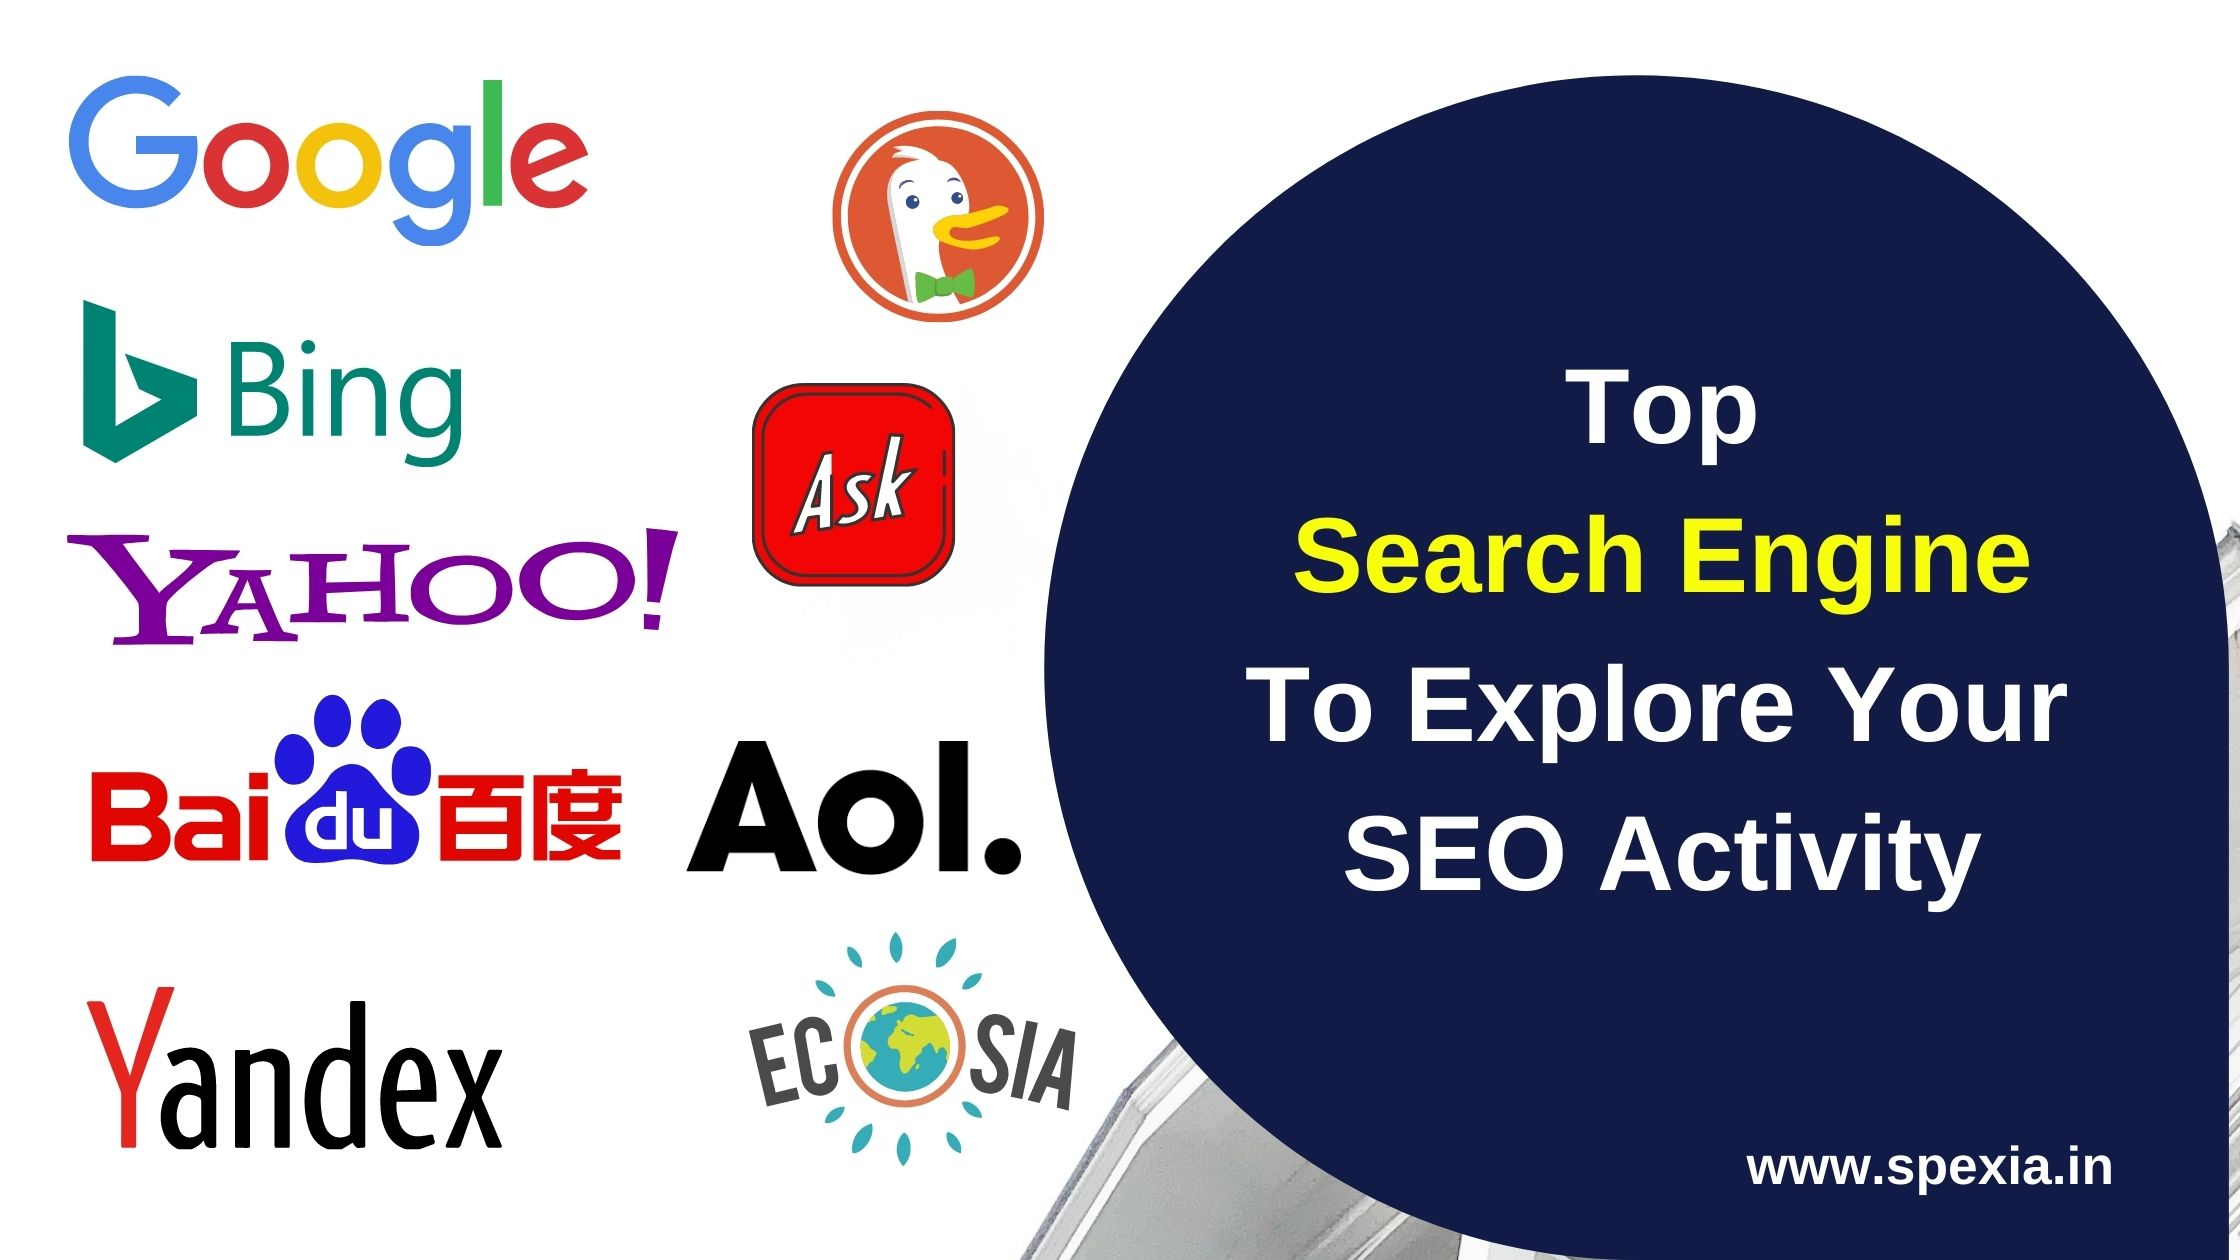 Top Search Engines To Explore Your SEO Activity